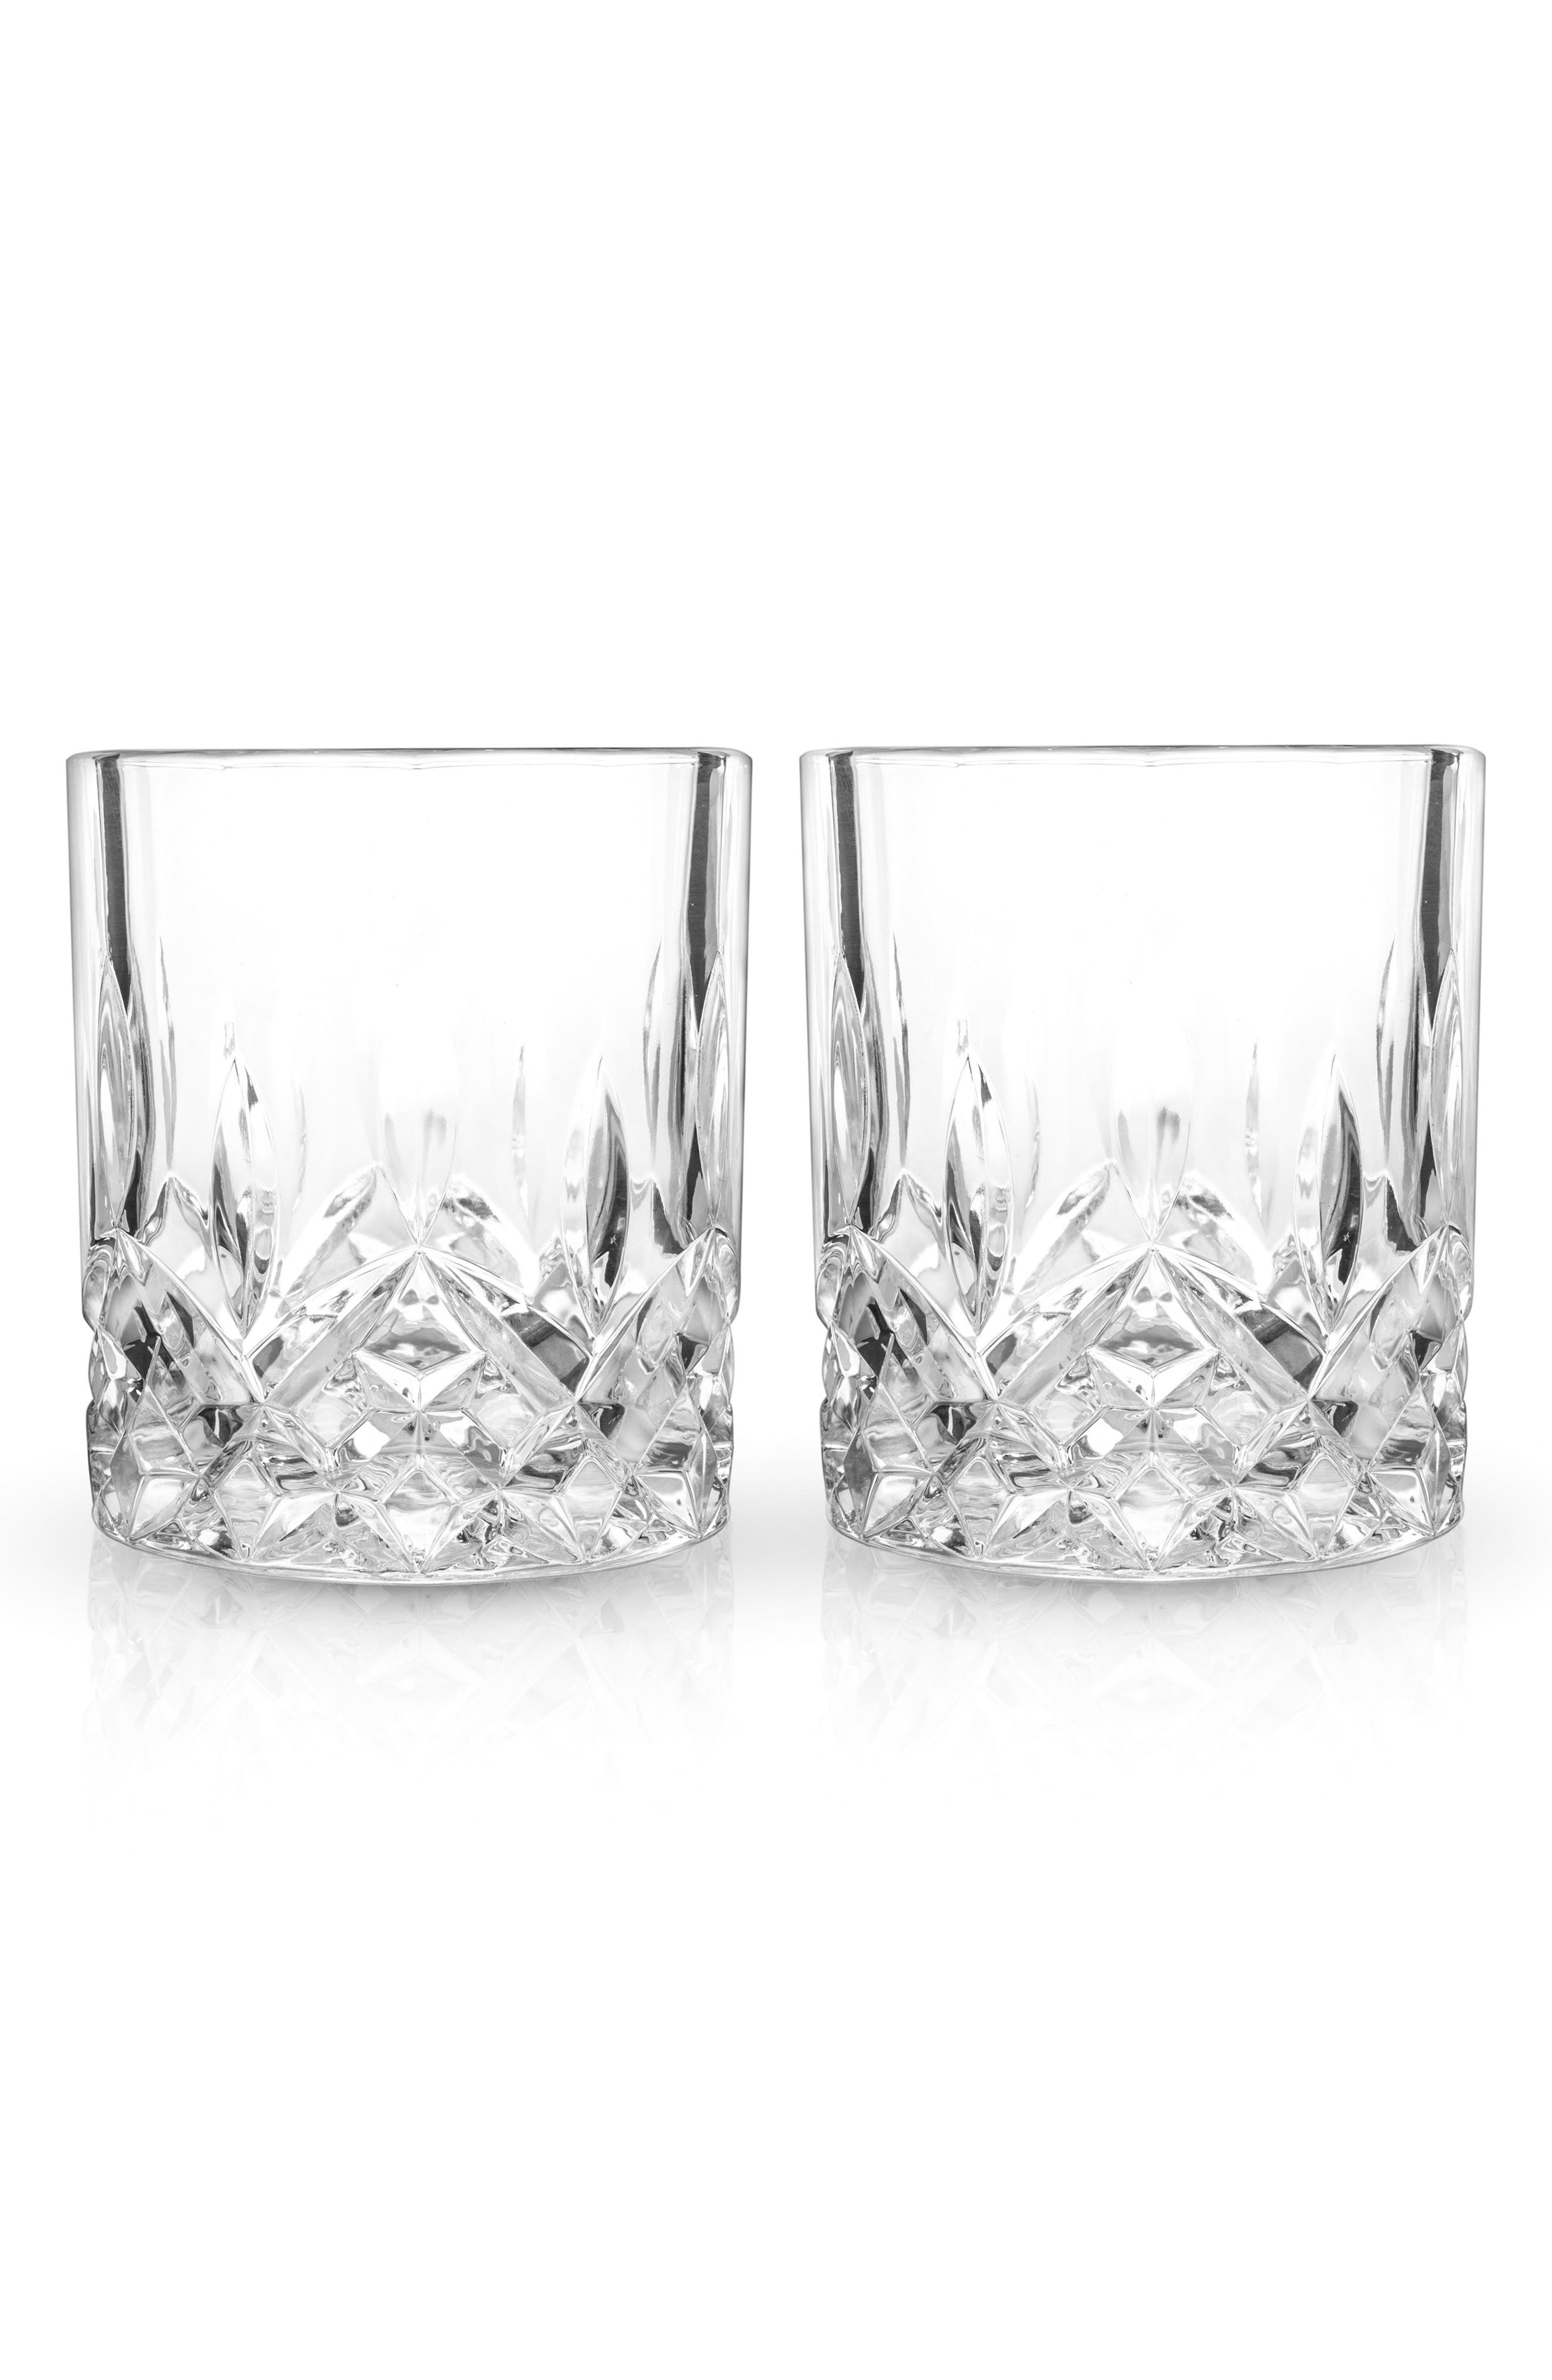 Admiral Set of 2 Double Old-Fashioned Glasses,                             Main thumbnail 1, color,                             Clear